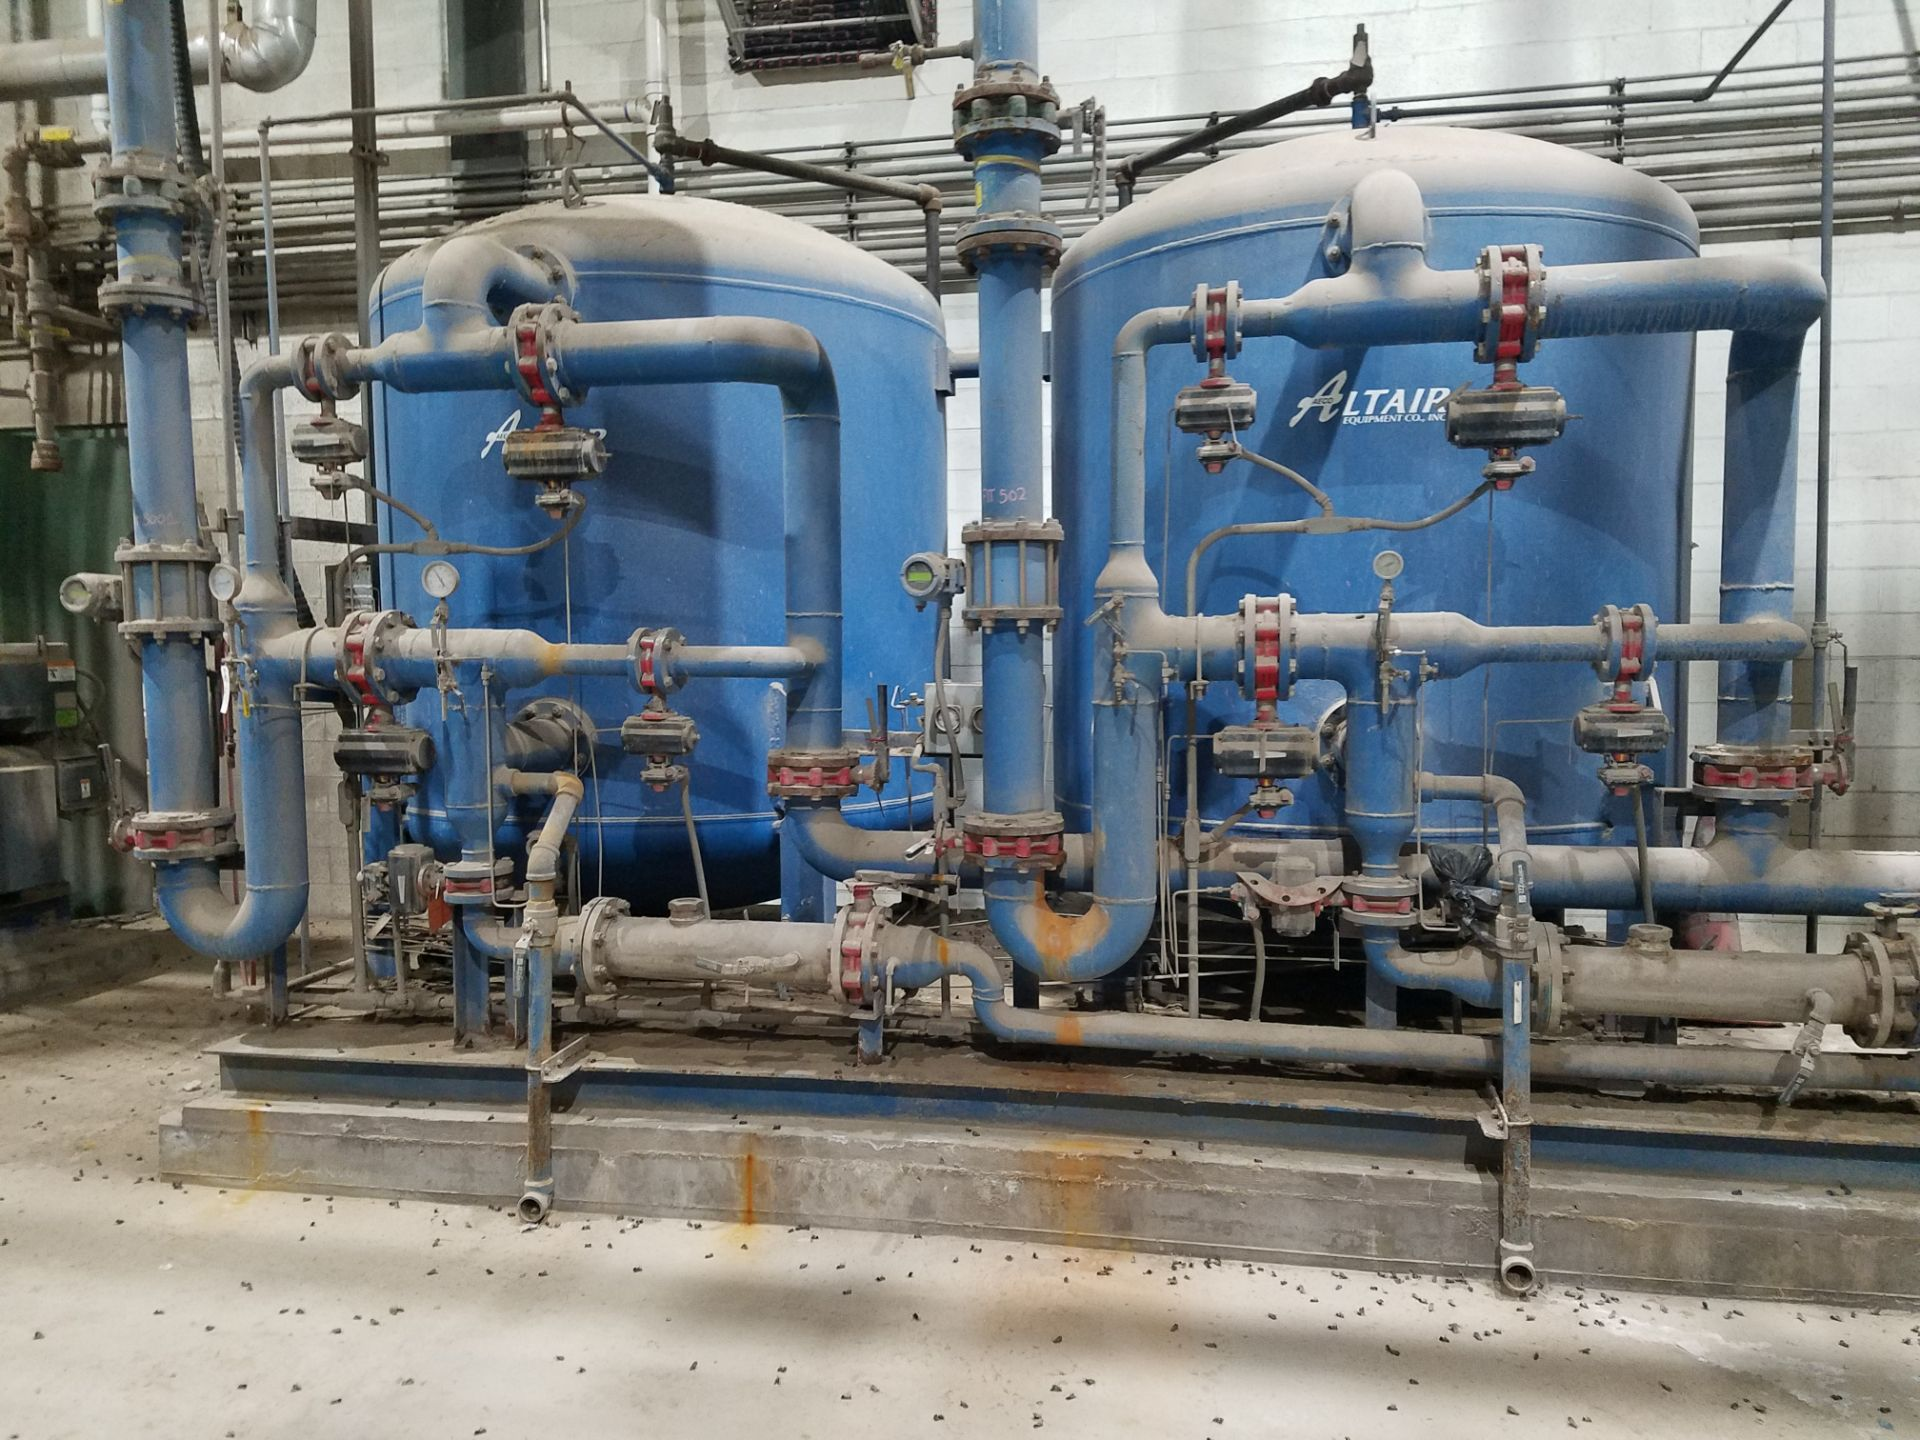 Lot 51 - Altair Equipment Co Water Softener System | Rig Fee: $3000